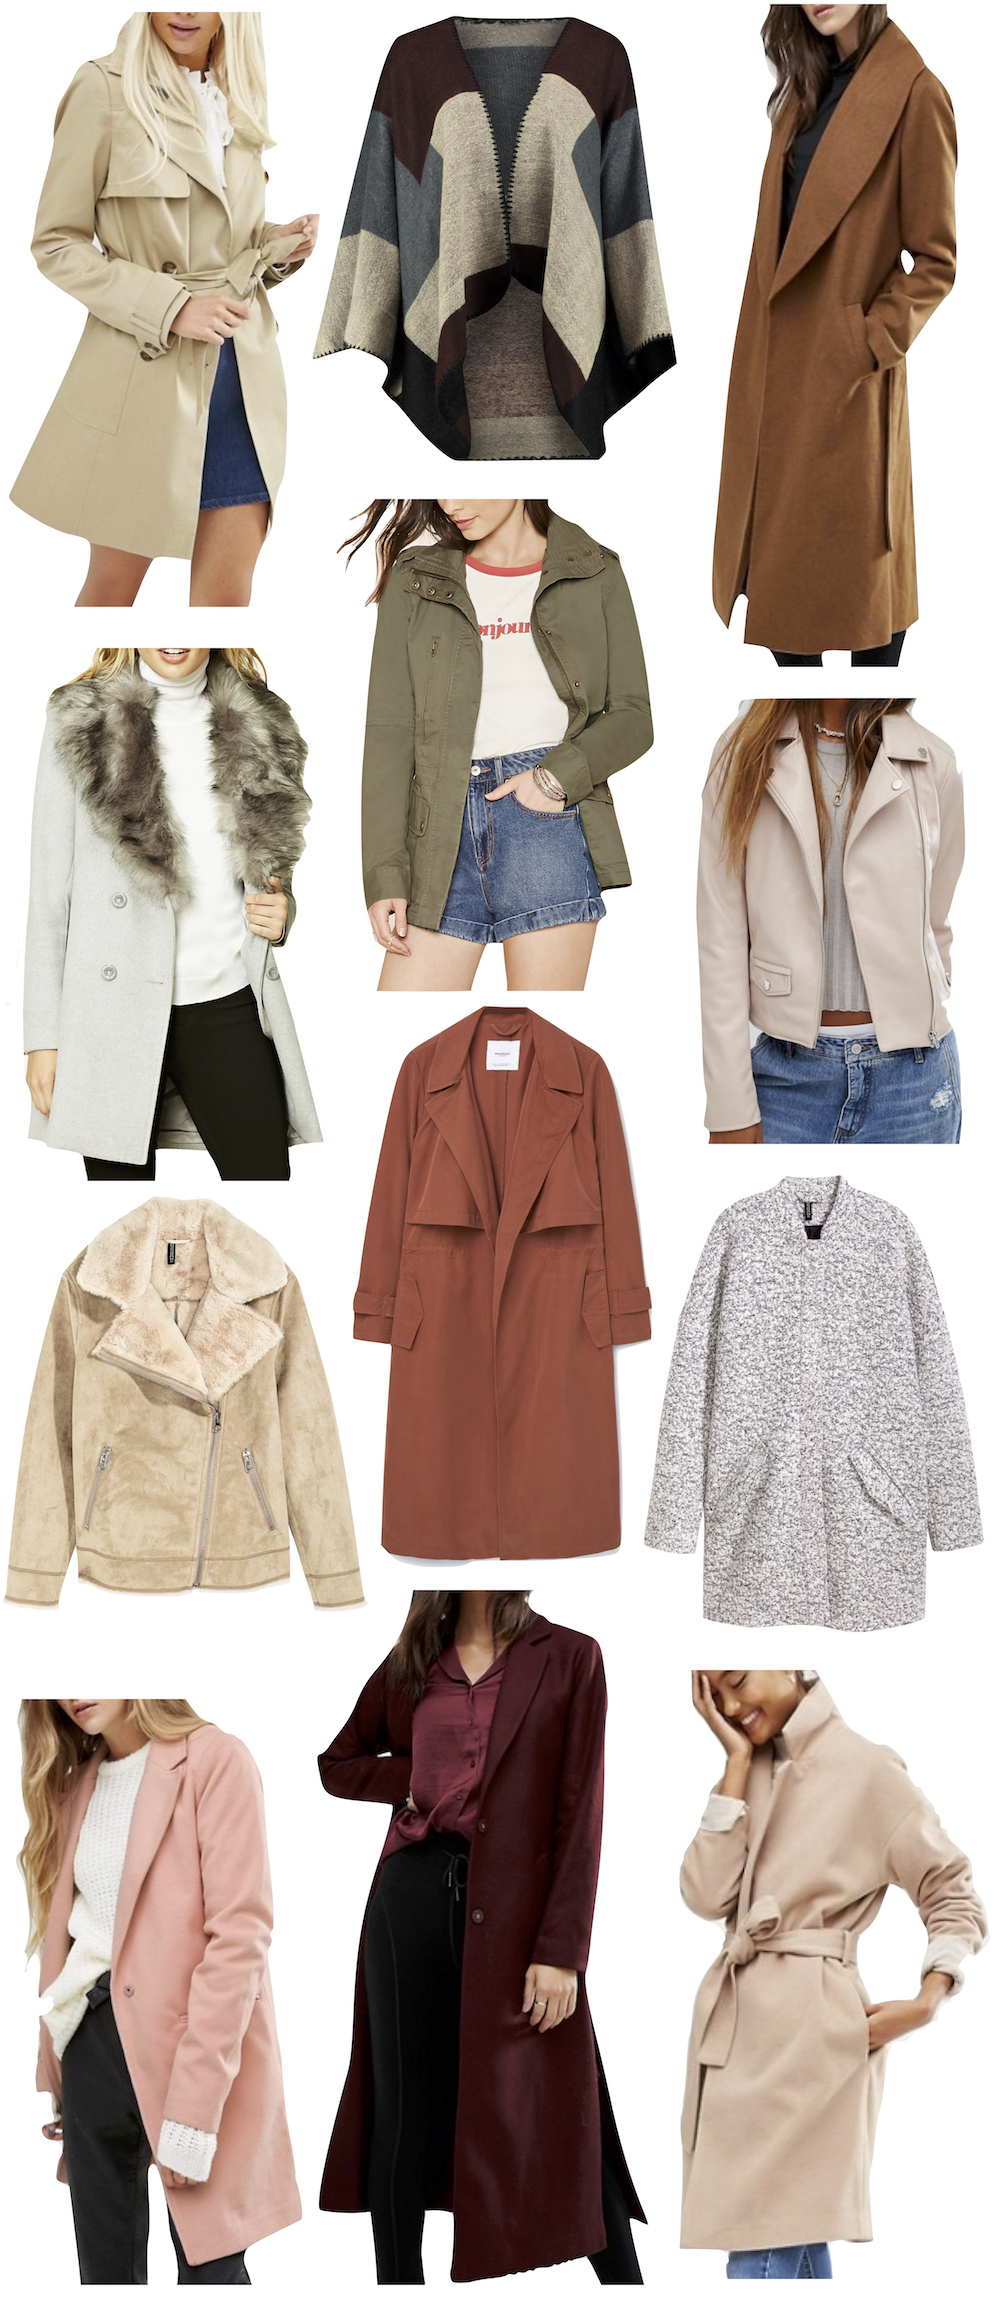 Affordable Fall Coats Under $100 - Kelly's Chic - Kelly Burns, The Stripe Blog